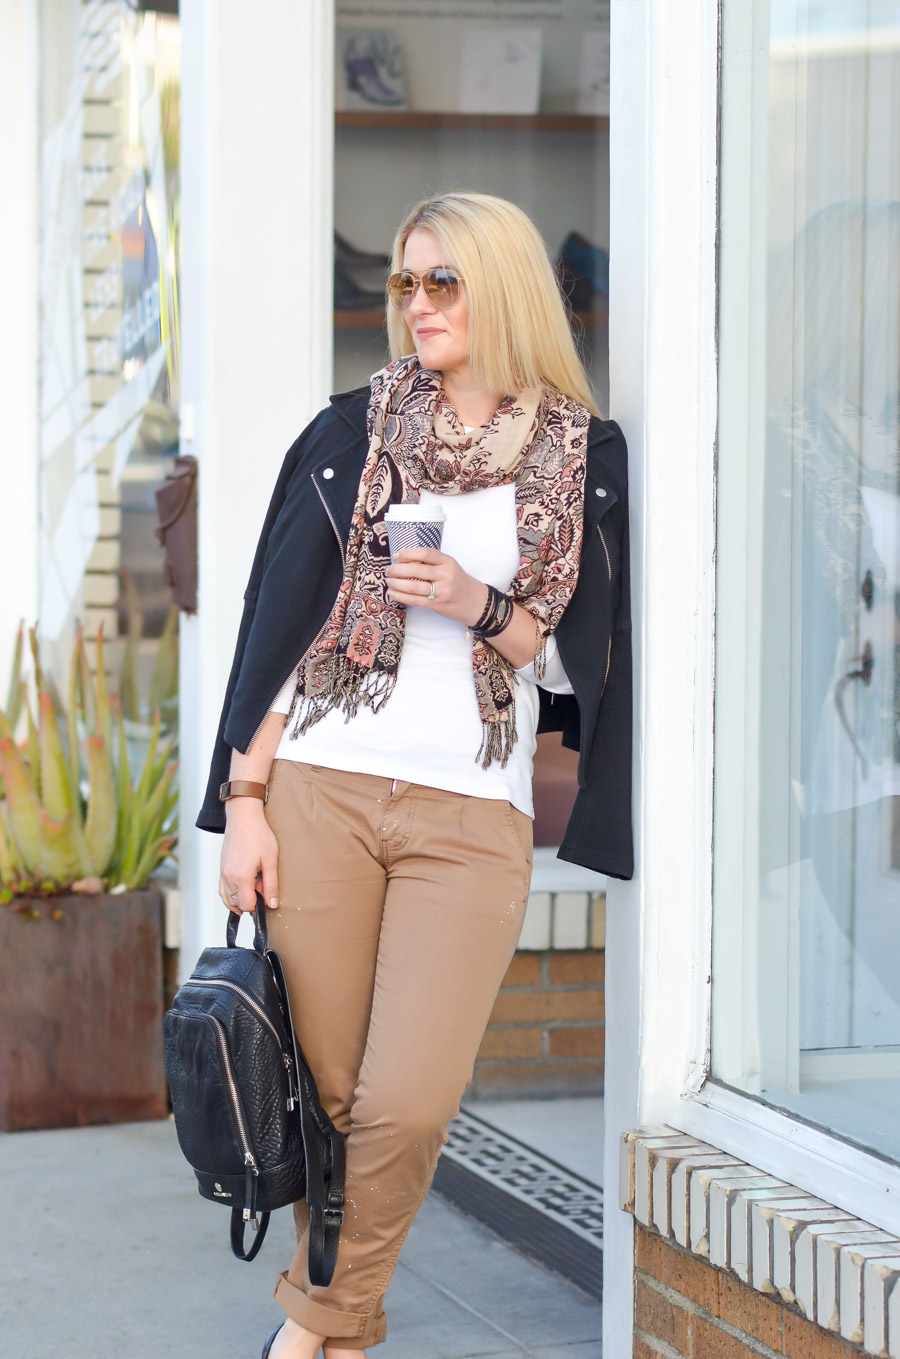 Women's Khaki Pants Outfit for Spring w. Black Flats